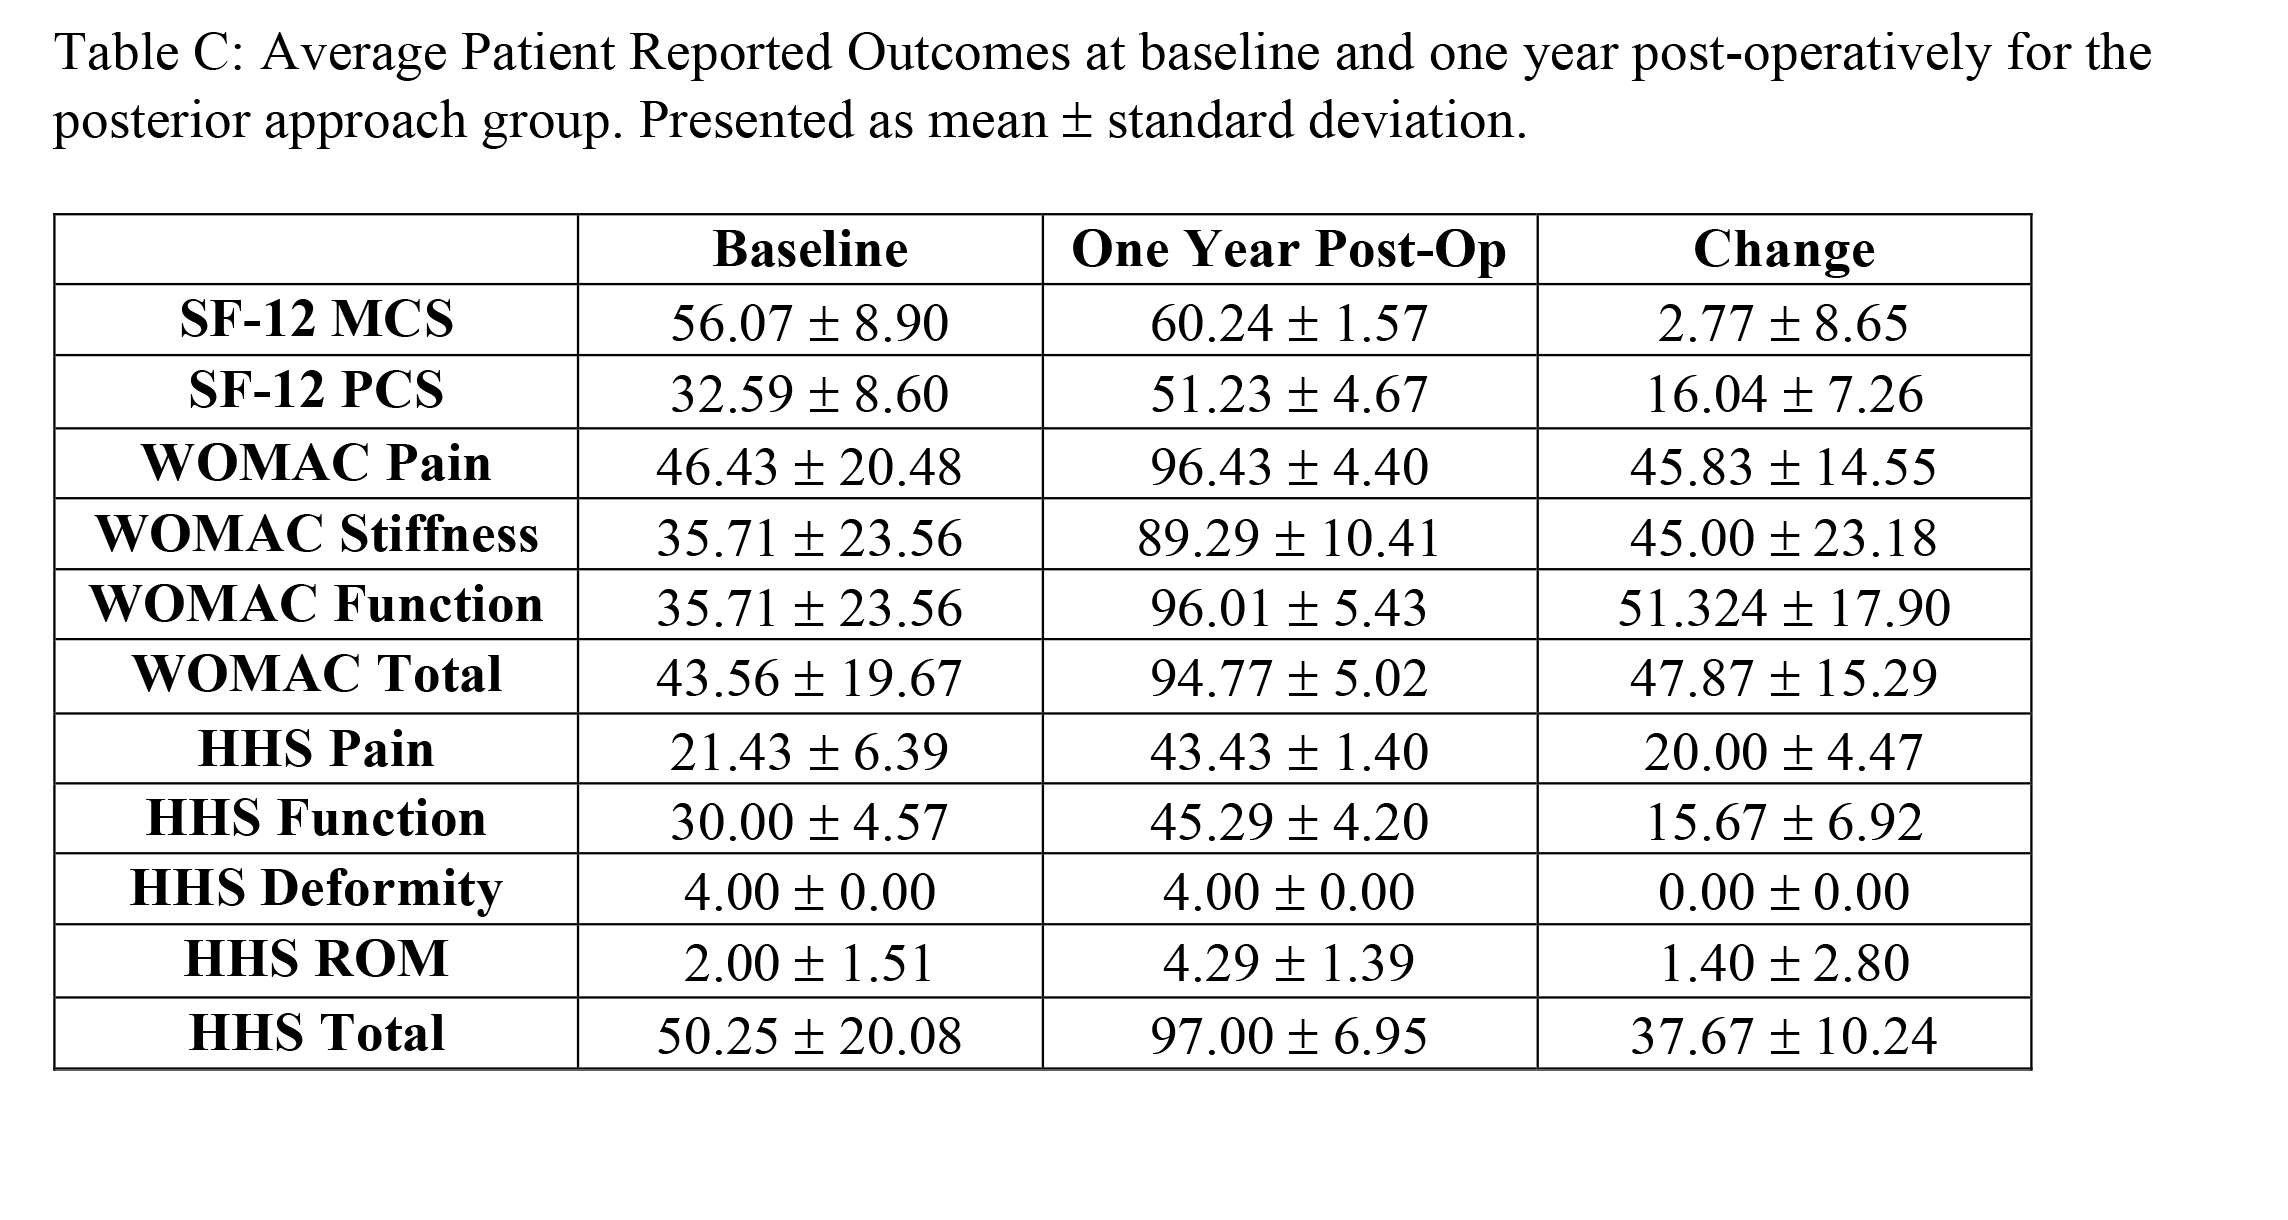 Average Patient Reported Outcomes at baseline and one year post-operatively for the posterior approach group. Presented as mean ± standard deviation.